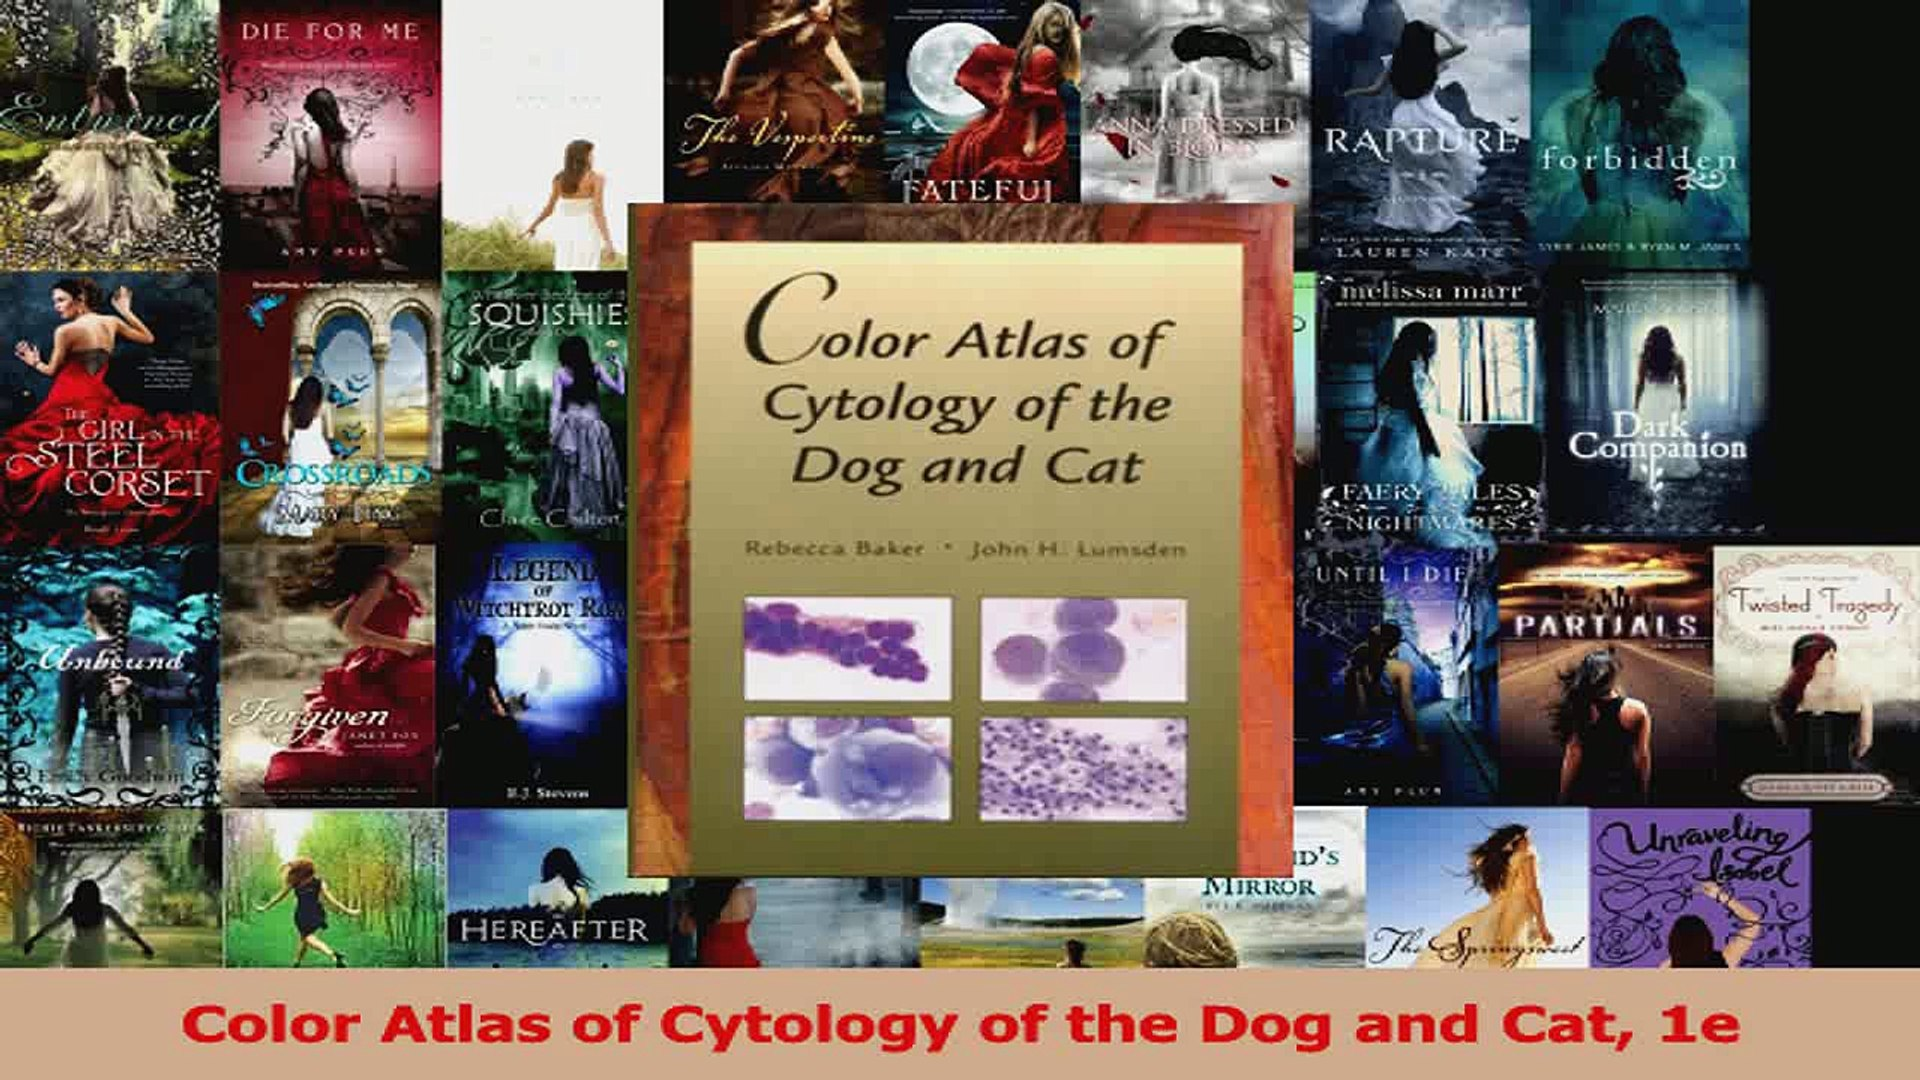 Color Atlas of Cytology of the Dog and Cat